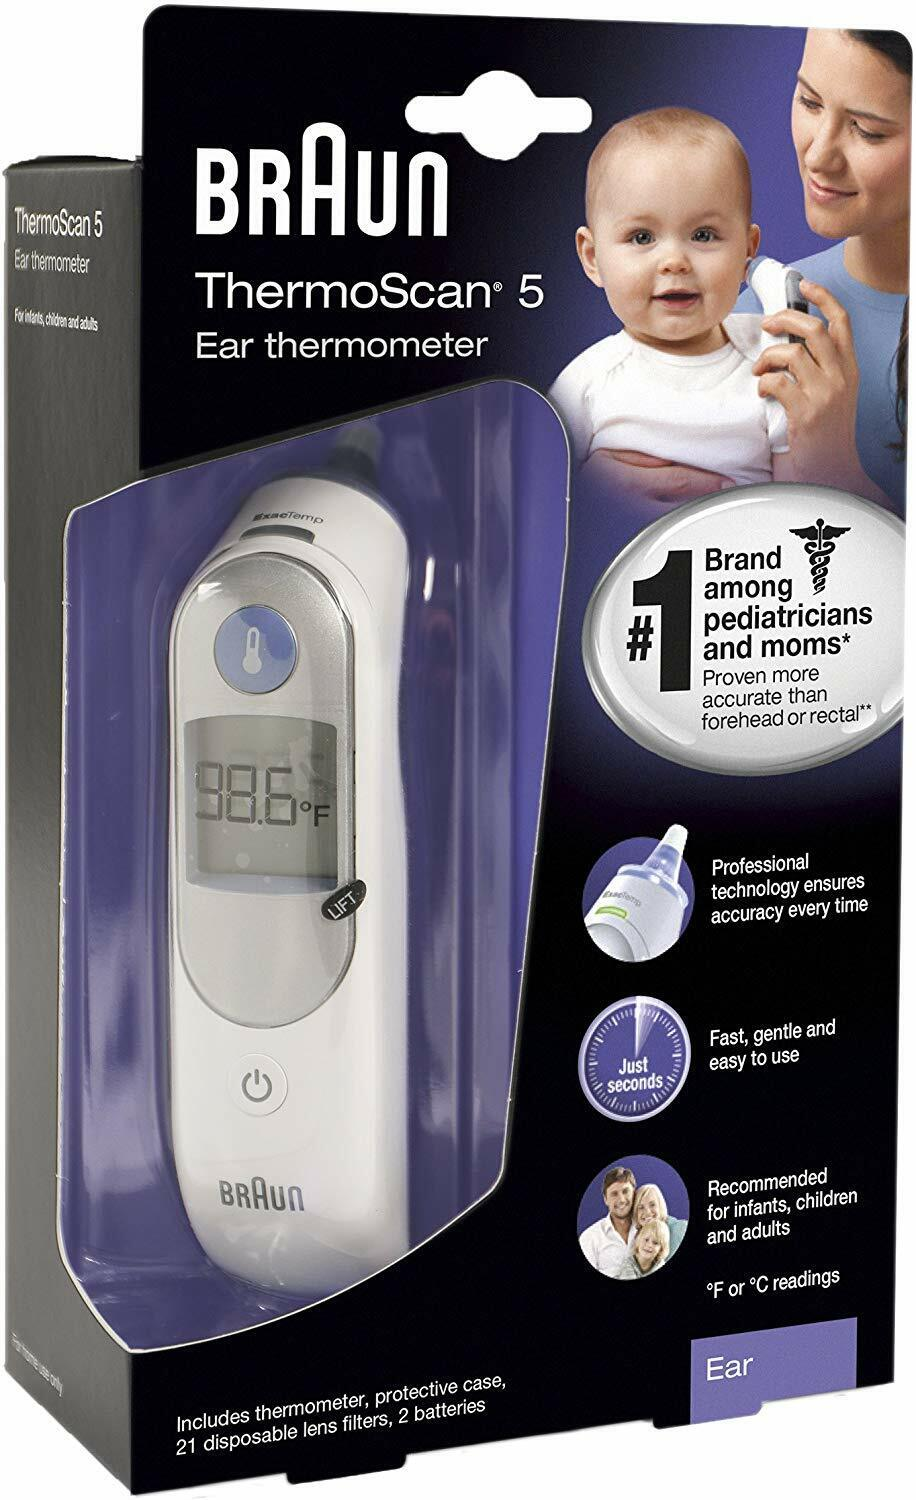 Braun Digital Ear Thermometer ThermoScan 5 – Free Shipping Health & Beauty